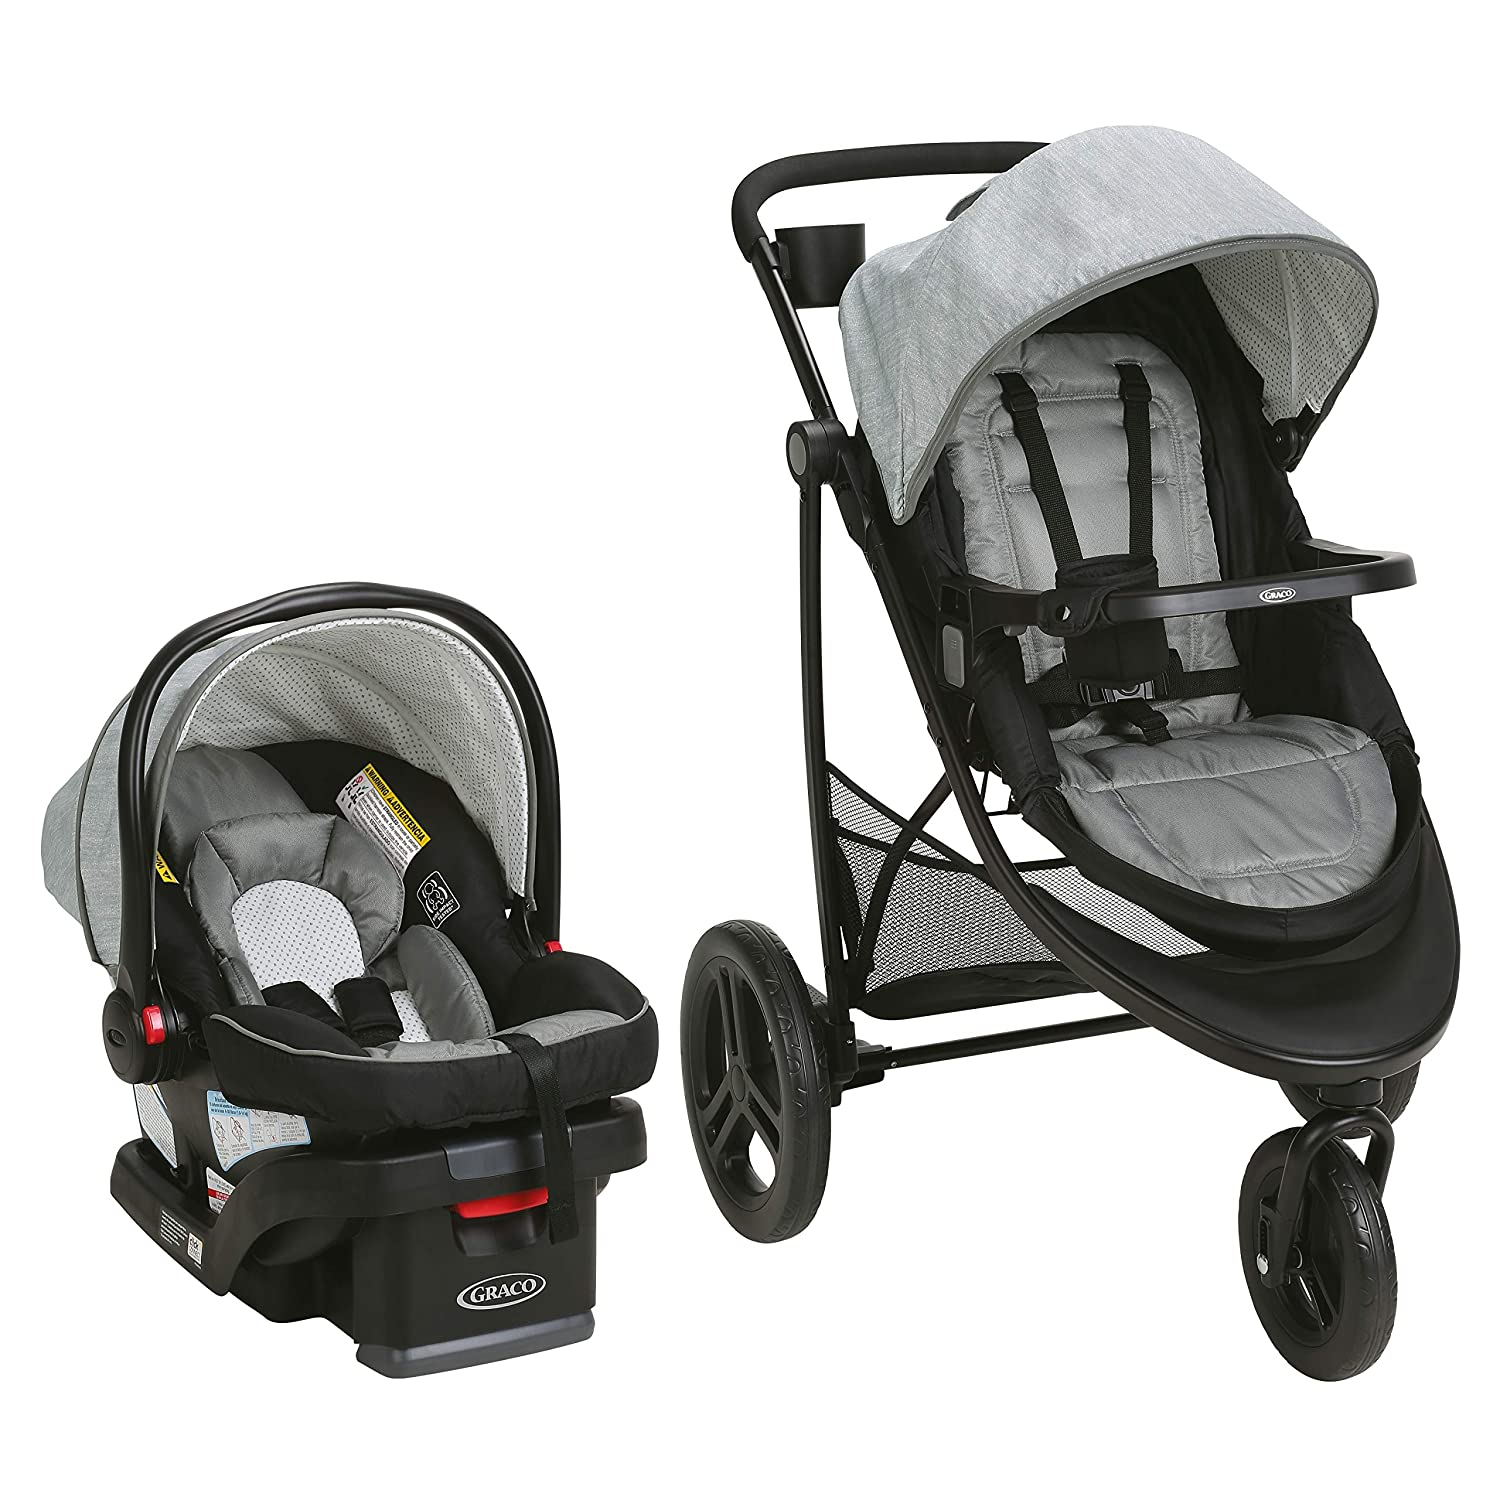 Graco Modes 3 Essentials LX Travel System   Includes Modes 3 Essentials LX Stroller and SnugRide SnugLock 30 Infant Car Seat, Mullaly